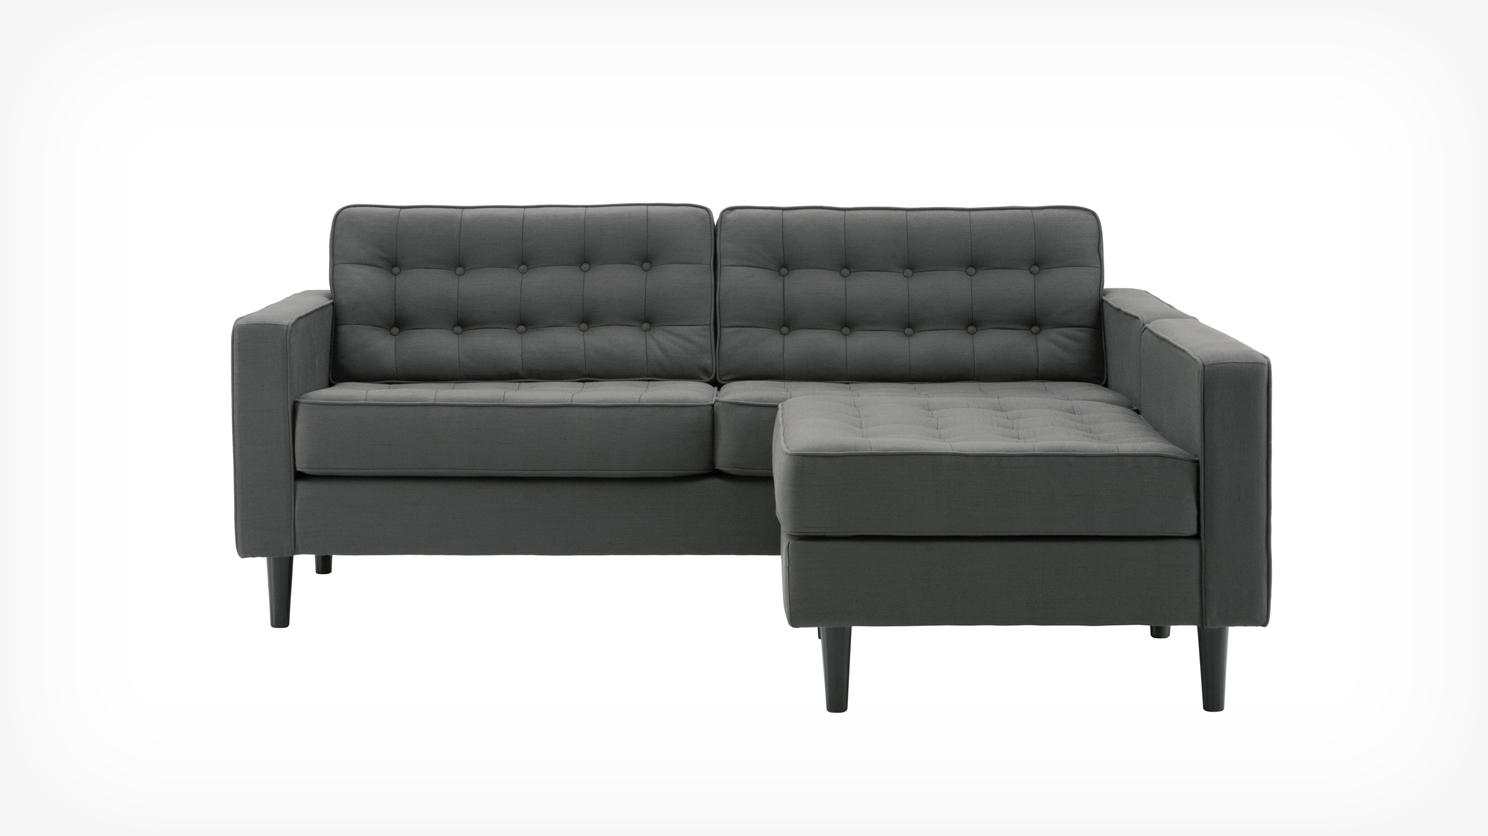 Eq3 | Reverie Apartment 2-Piece Sectional Sofa With Chaise - Fabric throughout 2 Seat Sectional Sofas